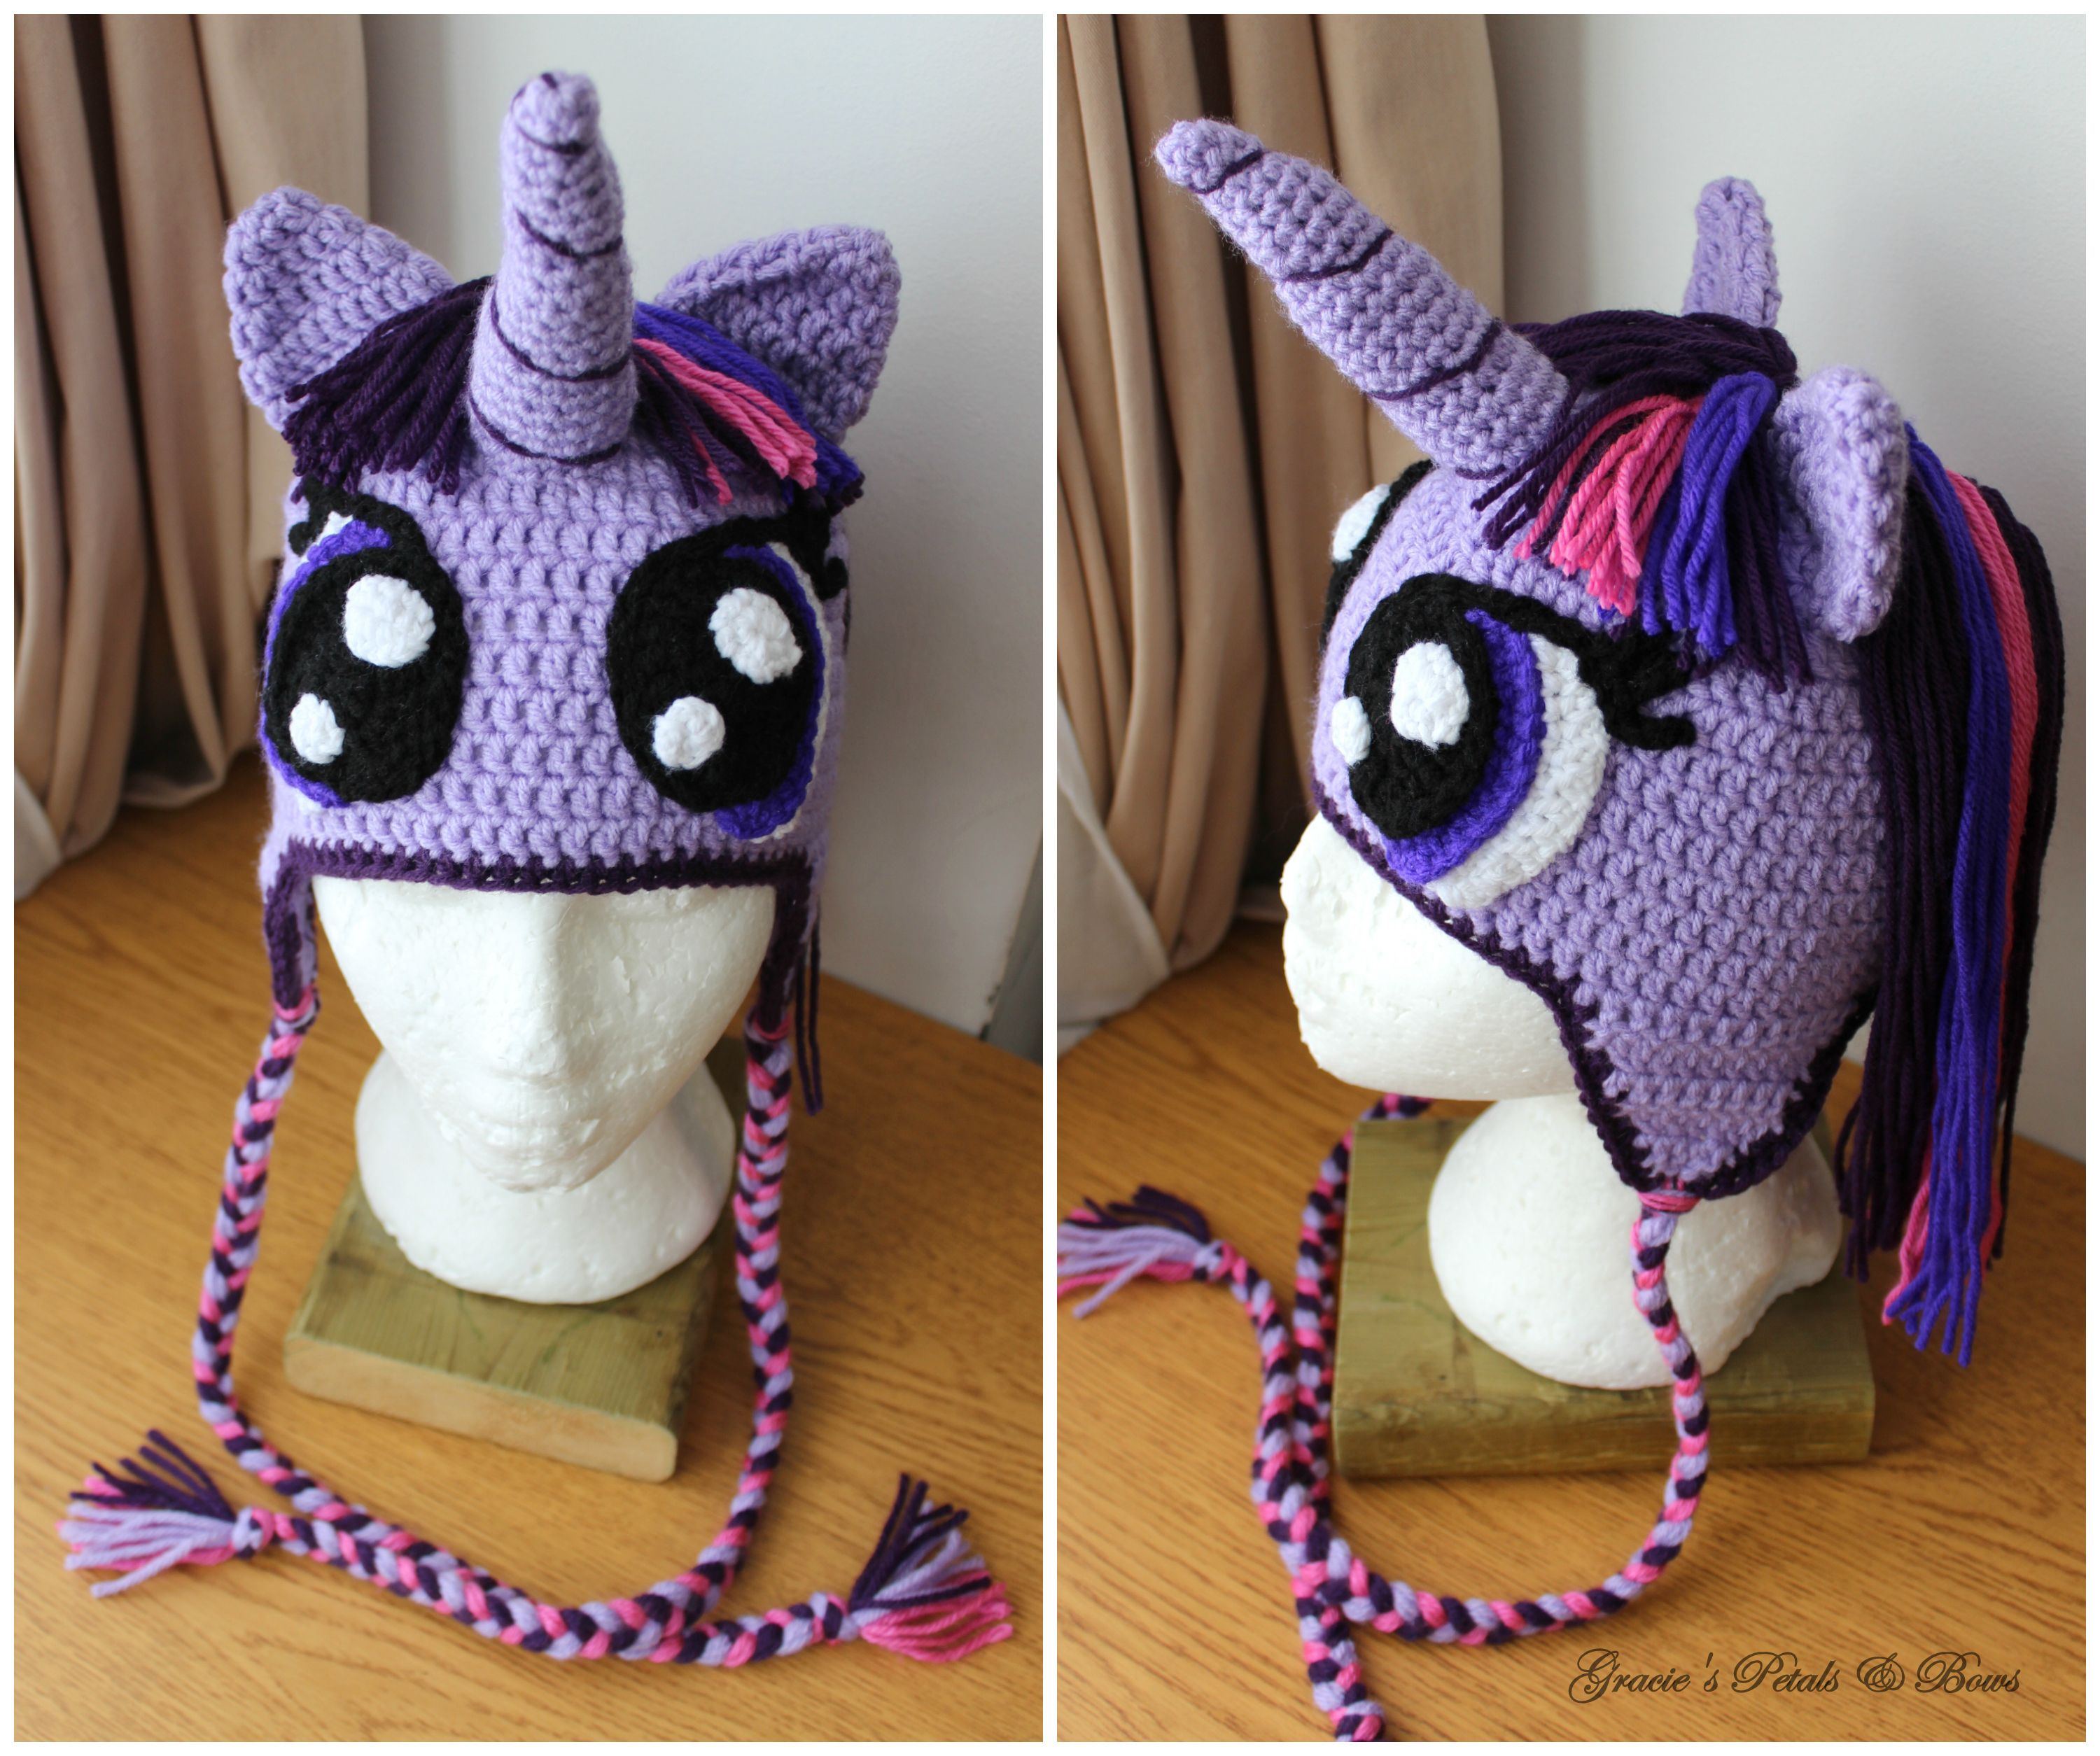 My Little Pony Inspired Hats